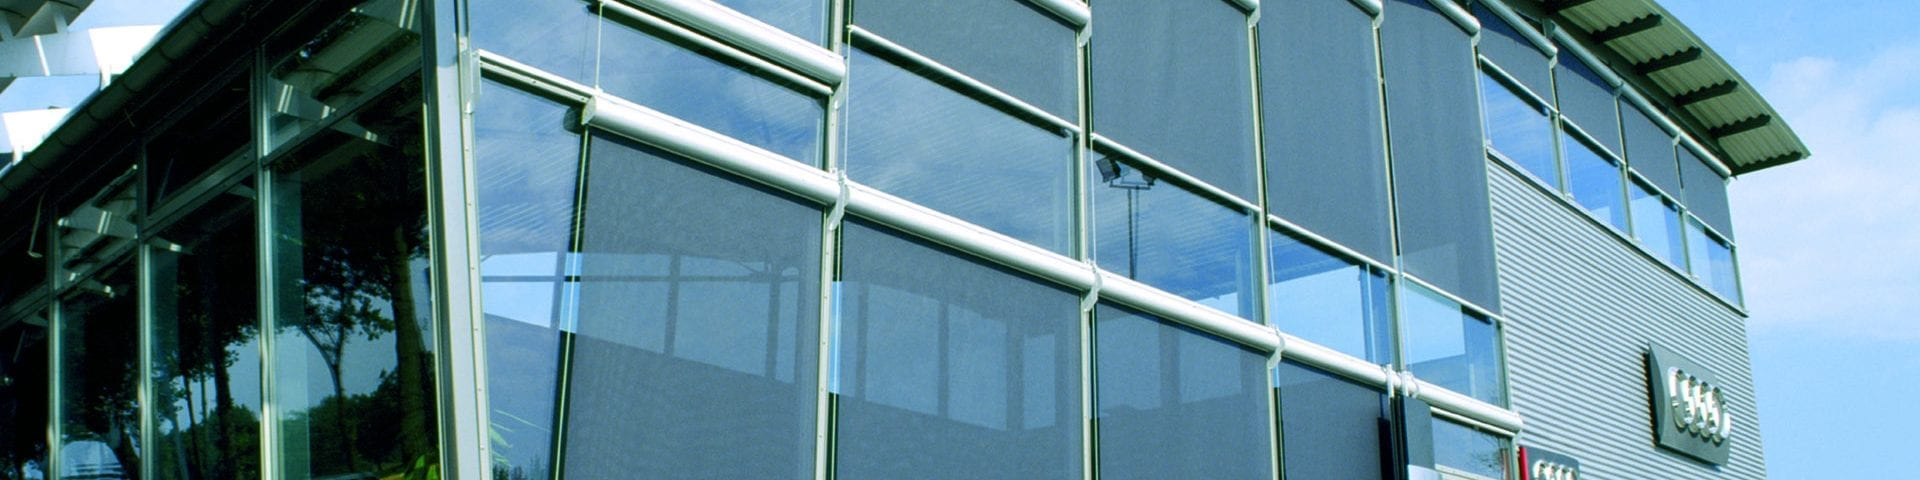 Commercial roller blinds from Insignia Windows